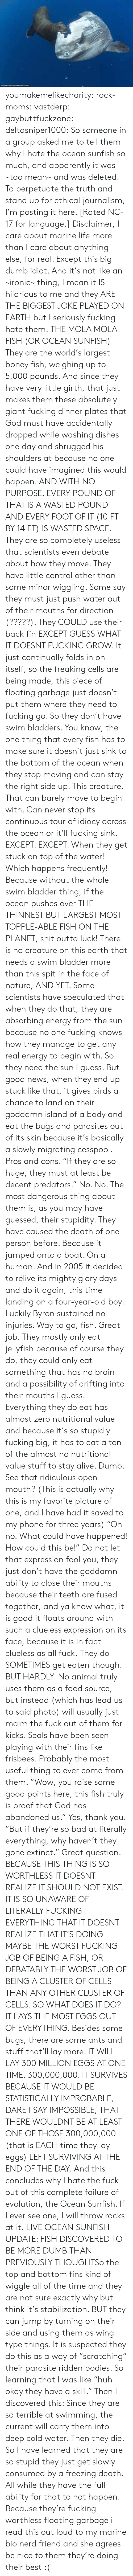 "surviving: ORihad Herrma M  S youmakemelikecharity:  rock-moms:  vastderp:  gaybuttfuckzone:  deltasniper1000:  So someone in a group asked me to tell them why I hate the ocean sunfish so much, and apparently it was ~too mean~ and was deleted. To perpetuate the truth and stand up for ethical journalism, I'm posting it here. [Rated NC-17 for language.]  Disclaimer, I care about marine life more than I care about anything else, for real. Except this big dumb idiot. And it's not like an ~ironic~ thing, I mean it IS hilarious to me and they ARE THE BIGGEST JOKE PLAYED ON EARTH but I seriously fucking hate them.  THE MOLA MOLA FISH (OR OCEAN SUNFISH)  They are the world's largest boney fish, weighing up to 5,000 pounds. And since they have very little girth, that just makes them these absolutely giant fucking dinner plates that God must have accidentally dropped while washing dishes one day and shrugged his shoulders at because no one could have imagined this would happen. AND WITH NO PURPOSE. EVERY POUND OF THAT IS A WASTED POUND AND EVERY FOOT OF IT (10 FT BY 14 FT) IS WASTED SPACE.  They are so completely useless that scientists even debate about how they move. They have little control other than some minor wiggling. Some say they must just push water out of their mouths for direction (?????). They COULD use their back fin EXCEPT GUESS WHAT IT DOESNT FUCKING GROW. It just continually folds in on itself, so the freaking cells are being made, this piece of floating garbage just doesn't put them where they need to fucking go.   So they don't have swim bladders. You know, the one thing that every fish has to make sure it doesn't just sink to the bottom of the ocean when they stop moving and can stay the right side up. This creature. That can barely move to begin with. Can never stop its continuous tour of idiocy across the ocean or it'll fucking sink. EXCEPT. EXCEPT. When they get stuck on top of the water! Which happens frequently! Because without the whole swim bladder thing, if the ocean pushes over THE THINNEST BUT LARGEST MOST TOPPLE-ABLE FISH ON THE PLANET, shit outta luck! There is no creature on this earth that needs a swim bladder more than this spit in the face of nature, AND YET. Some scientists have speculated that when they do that, they are absorbing energy from the sun because no one fucking knows how they manage to get any real energy to begin with. So they need the sun I guess. But good news, when they end up stuck like that, it gives birds a chance to land on their goddamn island of a body and eat the bugs and parasites out of its skin because it's basically a slowly migrating cesspool. Pros and cons.   ""If they are so huge, they must at least be decent predators."" No. No. The most dangerous thing about them is, as you may have guessed, their stupidity. They have caused the death of one person before. Because it jumped onto a boat. On a human. And in 2005 it decided to relive its mighty glory days and do it again, this time landing on a four-year-old boy. Luckily Byron sustained no injuries. Way to go, fish. Great job.  They mostly only eat jellyfish because of course they do, they could only eat something that has no brain and a possibility of drifting into their mouths I guess. Everything they do eat has almost zero nutritional value and because it's so stupidly fucking big, it has to eat a ton of the almost no nutritional value stuff to stay alive. Dumb. See that ridiculous open mouth? (This is actually why this is my favorite picture of one, and I have had it saved to my phone for three years) ""Oh no! What could have happened! How could this be!"" Do not let that expression fool you, they just don't have the goddamn ability to close their mouths because their teeth are fused together, and ya know what, it is good it floats around with such a clueless expression on its face, because it is in fact clueless as all fuck.  They do SOMETIMES get eaten though. BUT HARDLY. No animal truly uses them as a food source, but instead (which has lead us to said photo) will usually just maim the fuck out of them for kicks. Seals have been seen playing with their fins like frisbees. Probably the most useful thing to ever come from them.   ""Wow, you raise some good points here, this fish truly is proof that God has abandoned us."" Yes, thank you. ""But if they're so bad at literally everything, why haven't they gone extinct."" Great question.   BECAUSE THIS THING IS SO WORTHLESS IT DOESNT REALIZE IT SHOULD NOT EXIST. IT IS SO UNAWARE OF LITERALLY FUCKING EVERYTHING THAT IT DOESNT REALIZE THAT IT'S DOING MAYBE THE WORST FUCKING JOB OF BEING A FISH, OR DEBATABLY THE WORST JOB OF BEING A CLUSTER OF CELLS THAN ANY OTHER CLUSTER OF CELLS. SO WHAT DOES IT DO? IT LAYS THE MOST EGGS OUT OF EVERYTHING. Besides some bugs, there are some ants and stuff that'll lay more. IT WILL LAY 300 MILLION EGGS AT ONE TIME. 300,000,000. IT SURVIVES BECAUSE IT WOULD BE STATISTICALLY IMPROBABLE, DARE I SAY IMPOSSIBLE, THAT THERE WOULDNT BE AT LEAST ONE OF THOSE 300,000,000 (that is EACH time they lay eggs) LEFT SURVIVING AT THE END OF THE DAY.   And this concludes why I hate the fuck out of this complete failure of evolution, the Ocean Sunfish. If I ever see one, I will throw rocks at it.   LIVE OCEAN SUNFISH UPDATE: FISH DISCOVERED TO BE MORE DUMB THAN PREVIOUSLY THOUGHTSo  the top and bottom fins kind of wiggle all of the time and they are not  sure exactly why but think it's stabilization. BUT they can jump by  turning on their side and using them as  wing type things. It is suspected they do this as a way of ""scratching""  their parasite ridden bodies. So learning that I was like ""huh okay they  have a skill."" Then I discovered this: Since they  are so terrible at swimming, the current will carry them into deep cold  water. Then they die. So I have learned that they are so stupid they  just get slowly consumed by a freezing death. All while they have the  full ability for that to not happen. Because they're fucking worthless  floating garbage    i read this out loud to my marine bio nerd friend and she agrees   be nice to them they're doing their best :("